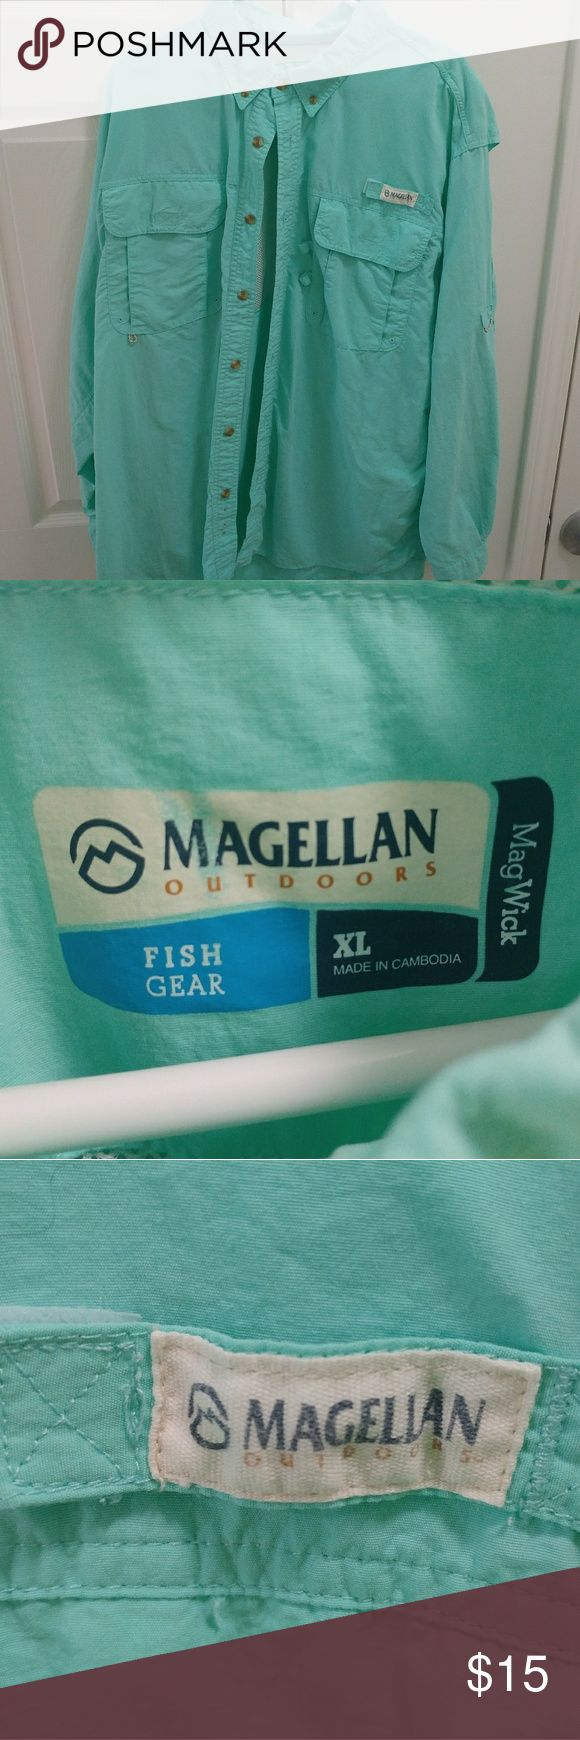 Magellan Outdoors Men's Long-Sleeve Fishing Shirt Be (implied huntin'), fishin', and lovin' every day with this Magellan Outdoors fishing shirt! It's in excellent condition and has never been used for fishing, so the pockets are in good shape. The fit is also true-to-size. These are like PFG shirts, but a better value, so if you want a nice fishing shirt or just something teal, this is right for you! Columbia Shirts Casual Button Down Shirts